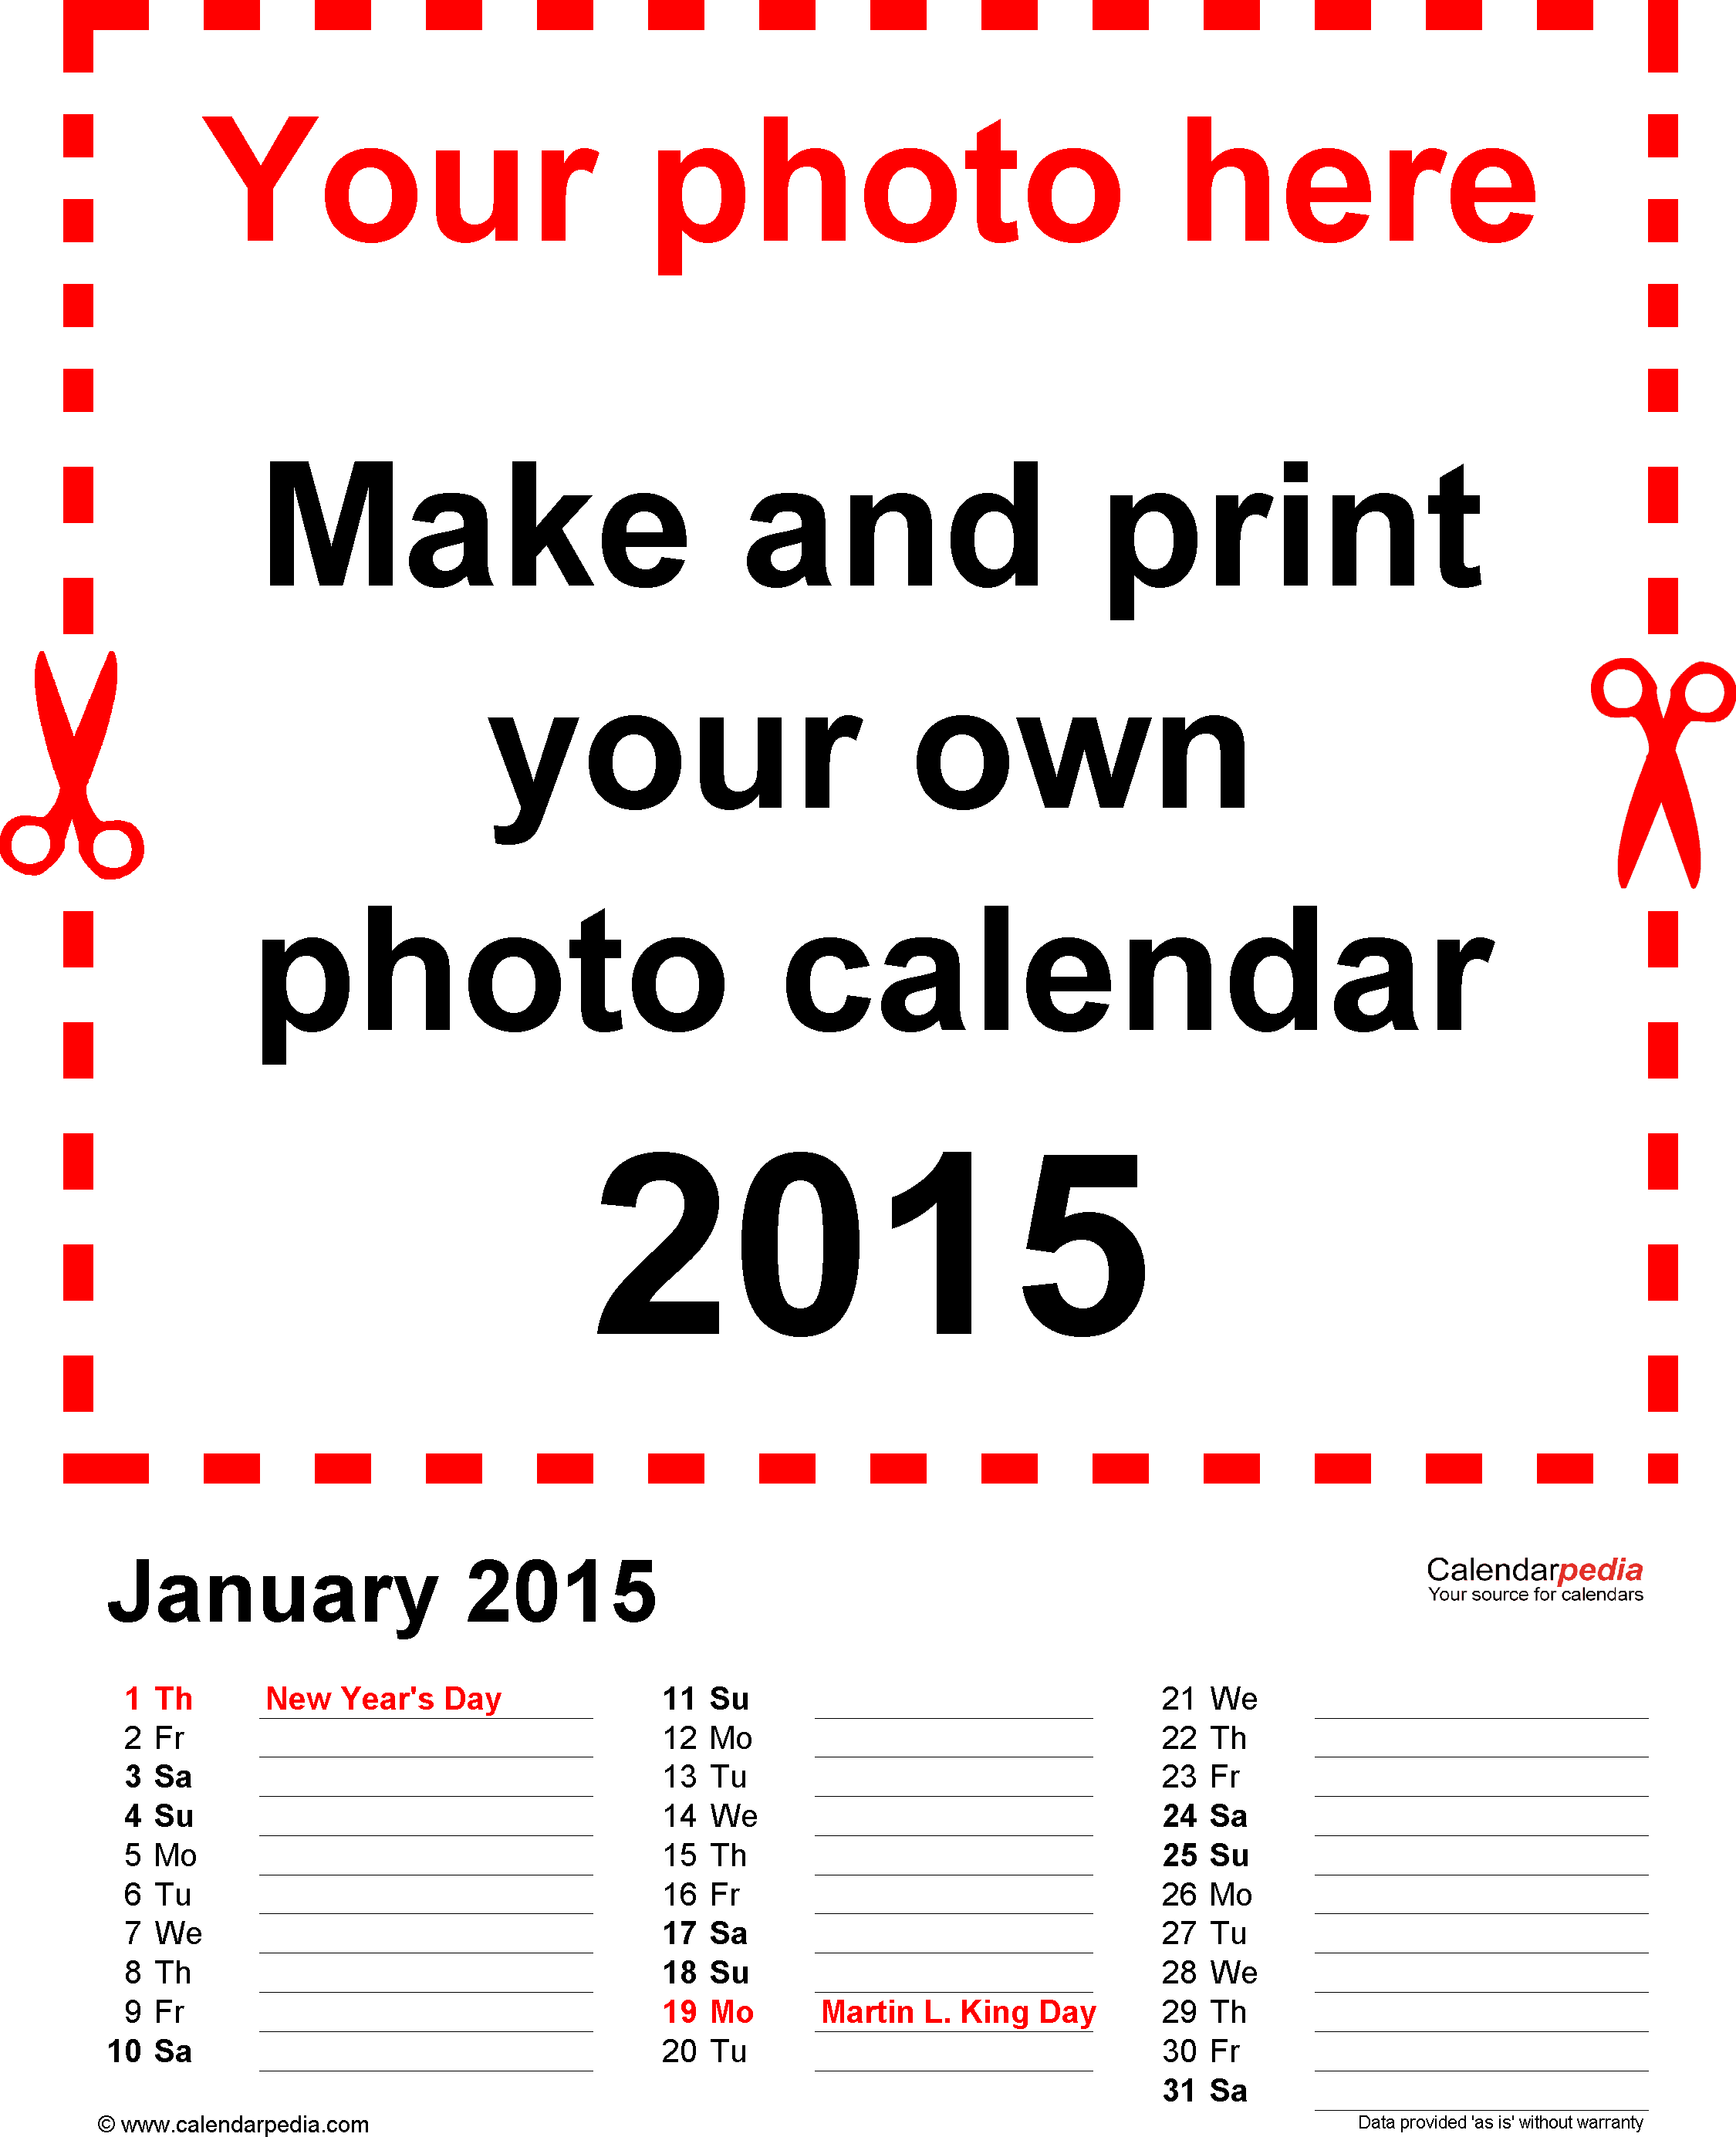 Download Template 3: Photo calendar 2015 for Word, 12 pages, portrait format, days in three columns